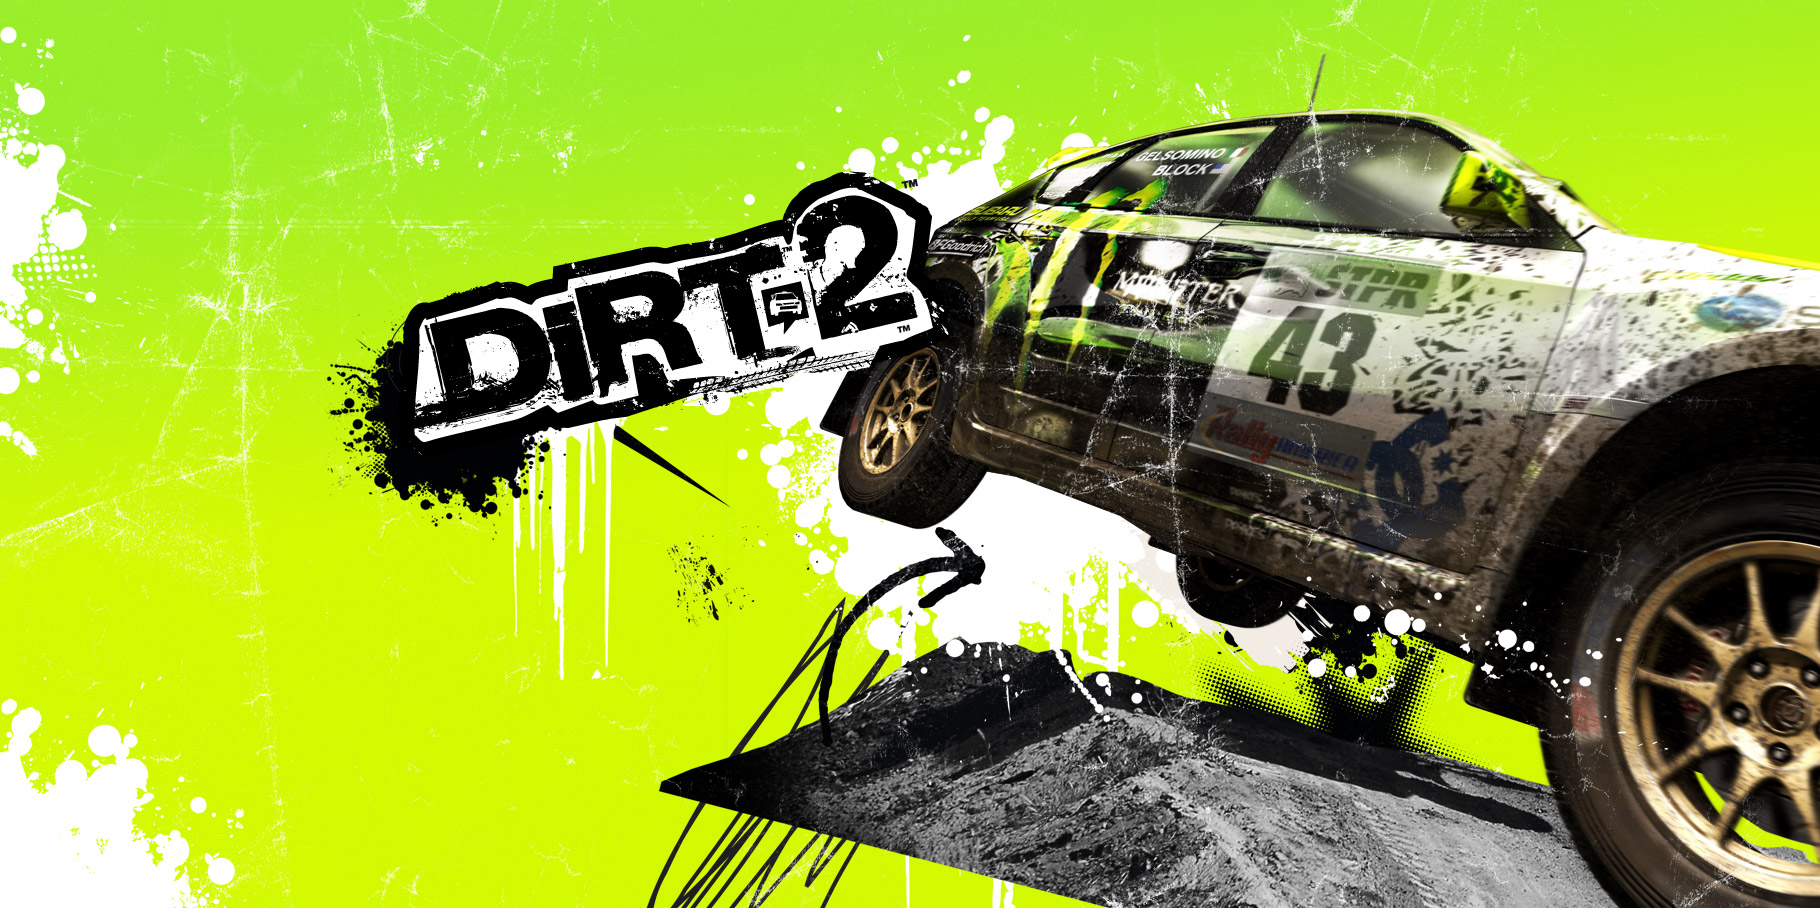 Artwork for Colin McRae: DiRT 2